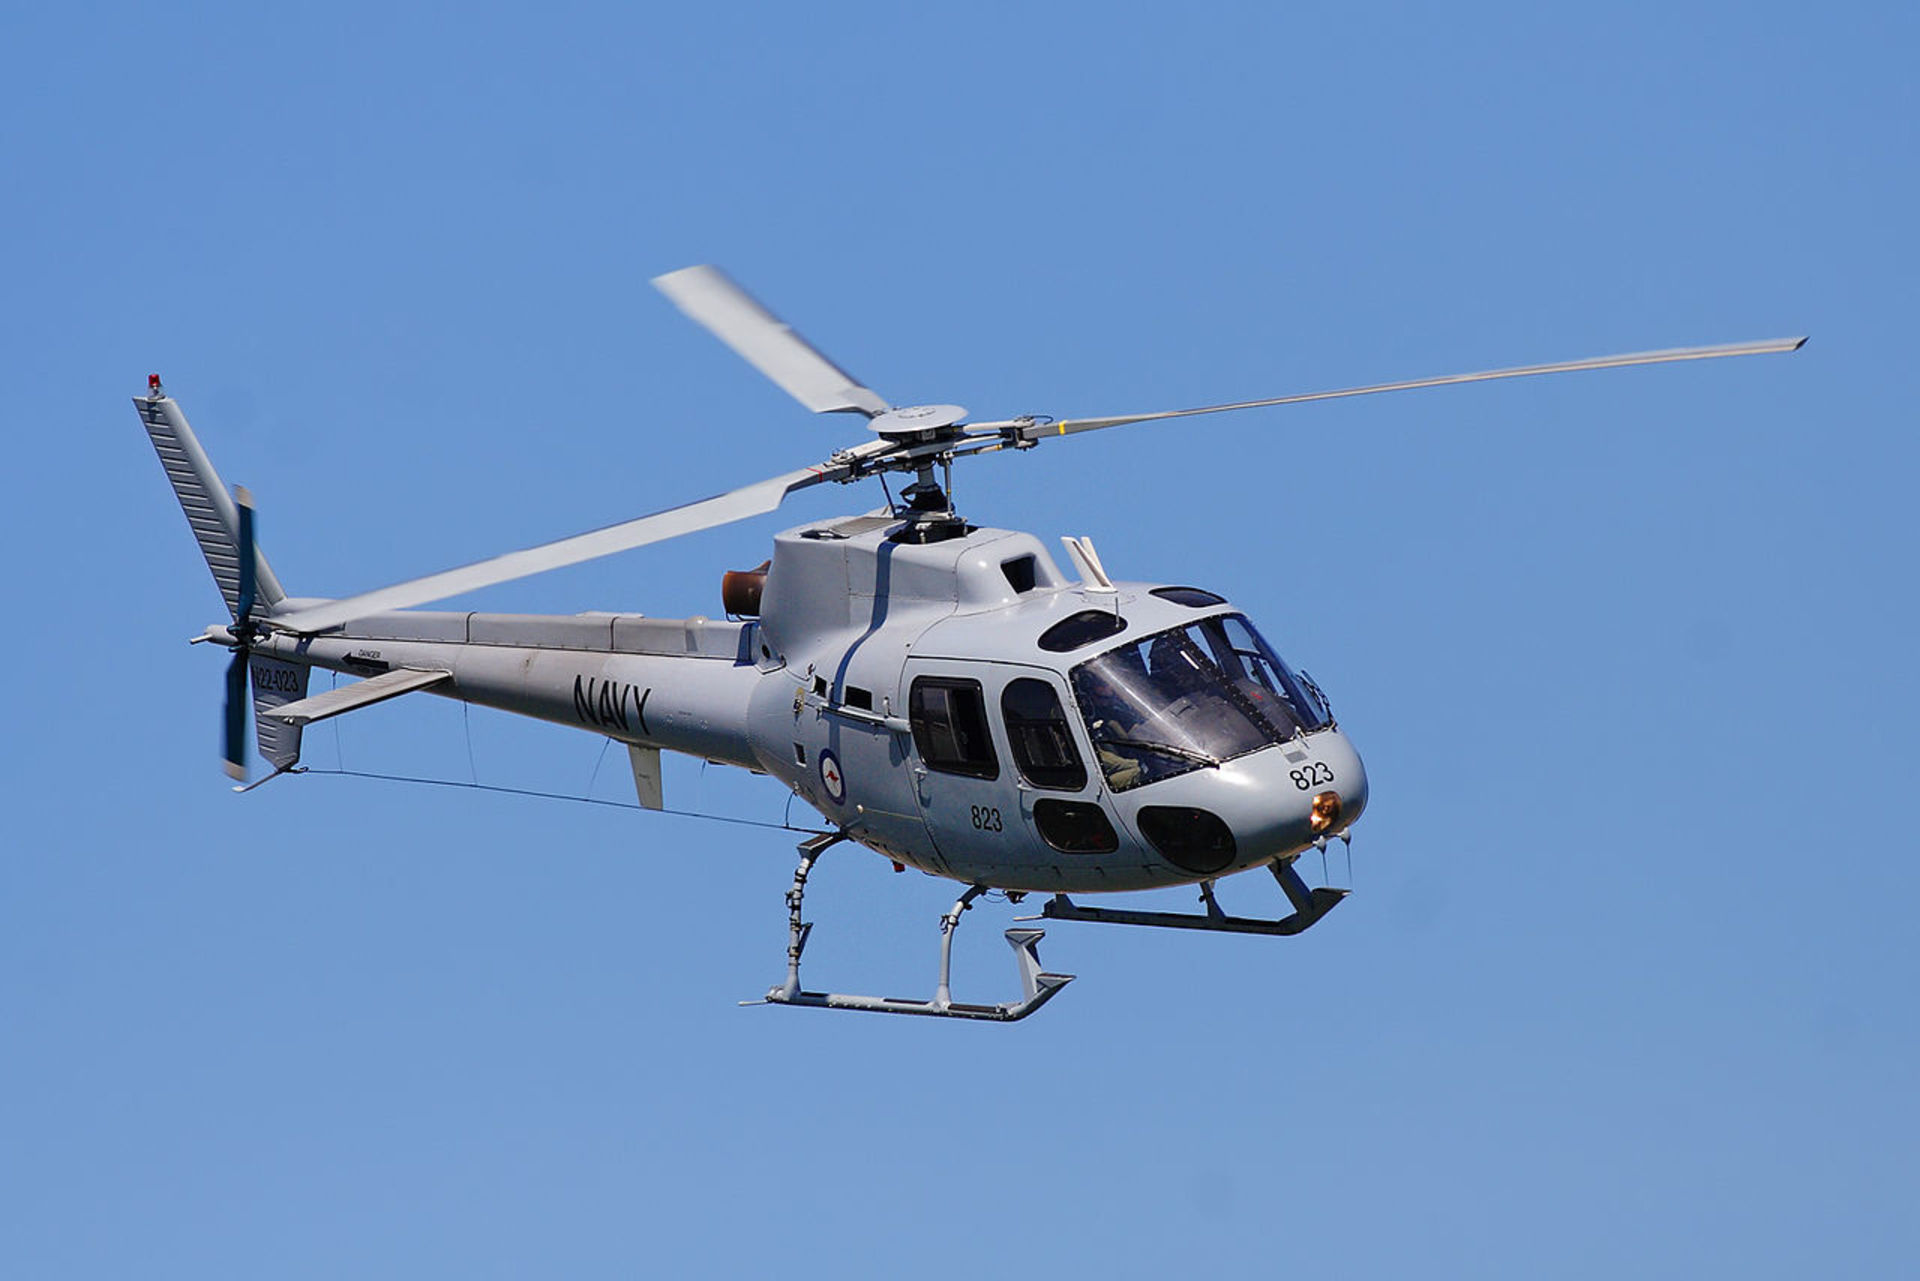 1280px-RAN_squirrel_helicopter_at_melb_GP_08.jpg